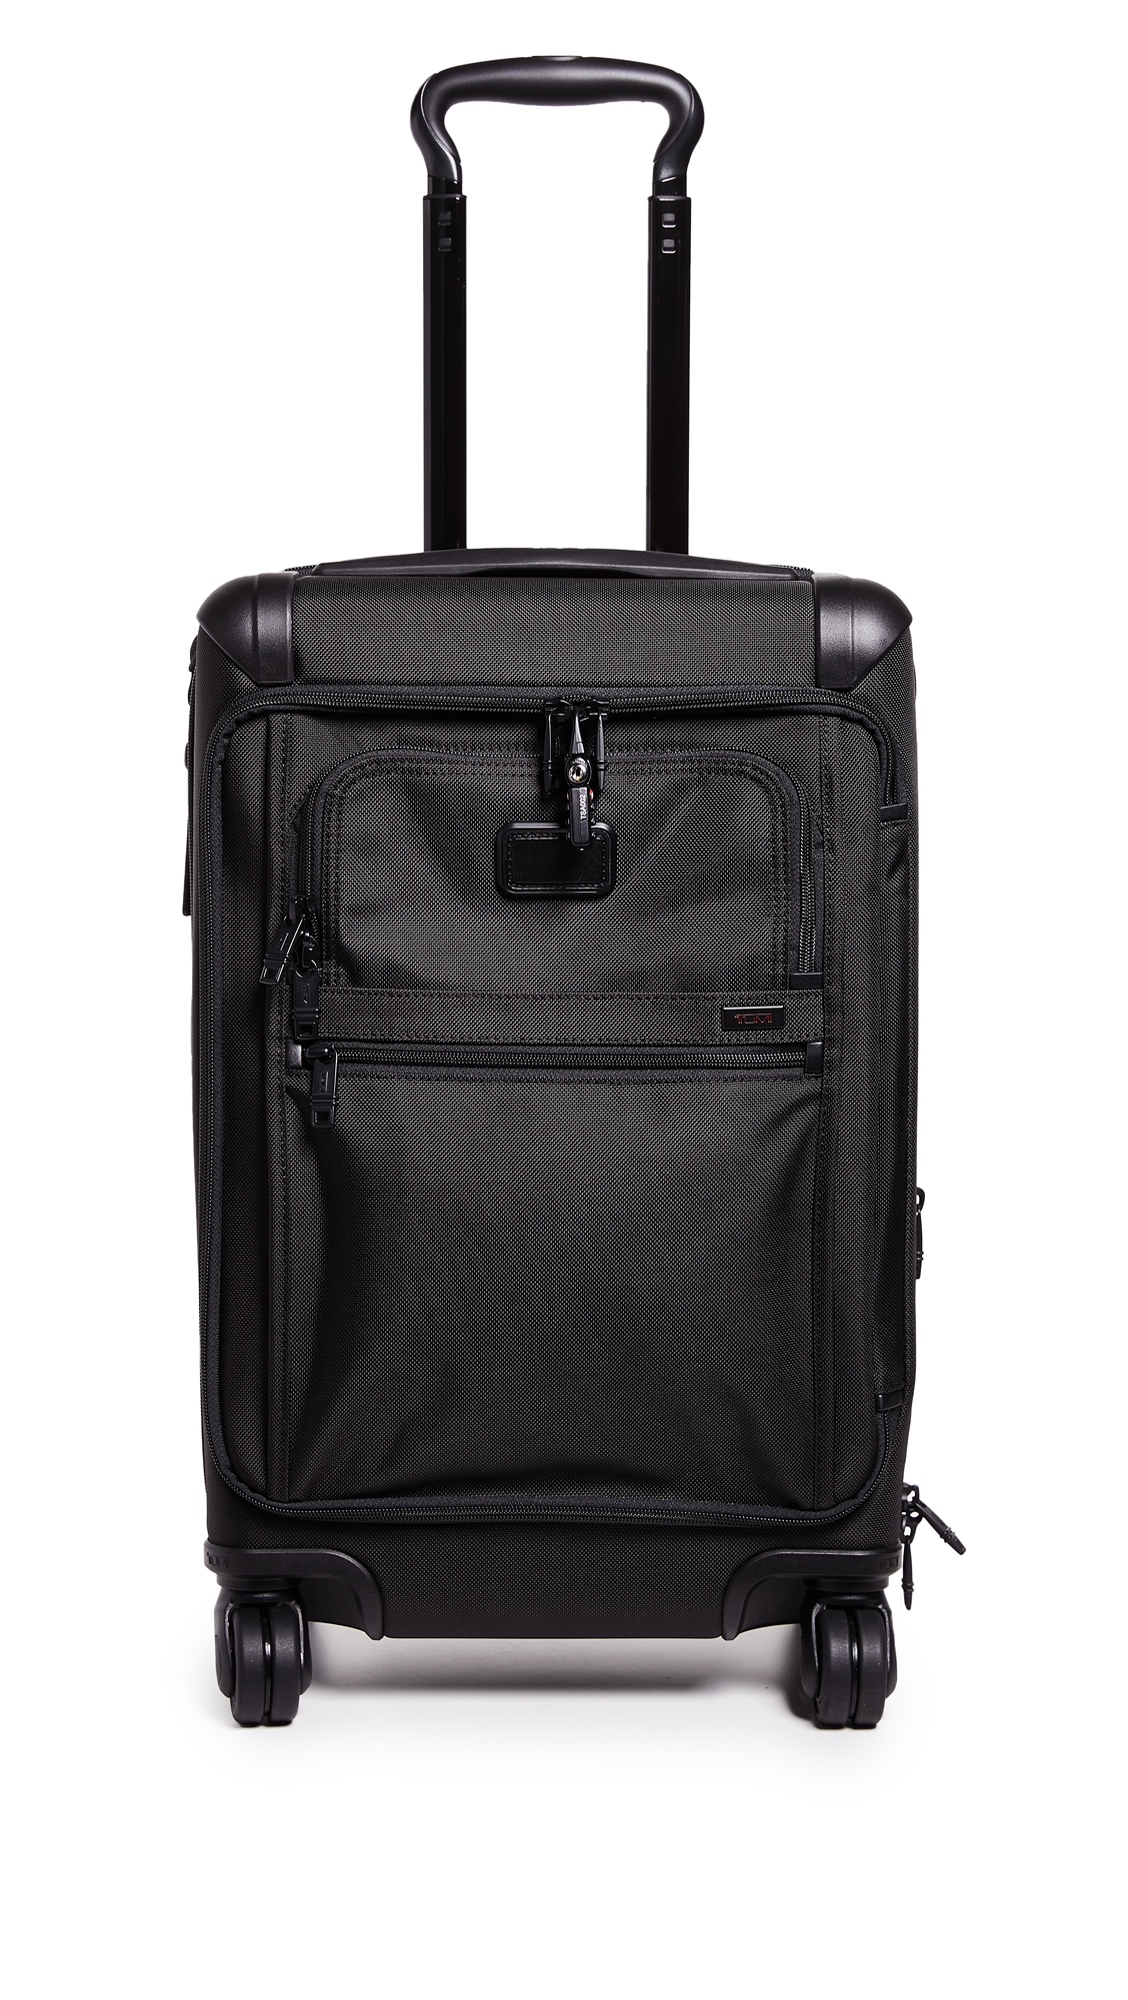 Alpha International Front Lid Carry On Suitcase, Black from EAST DANE